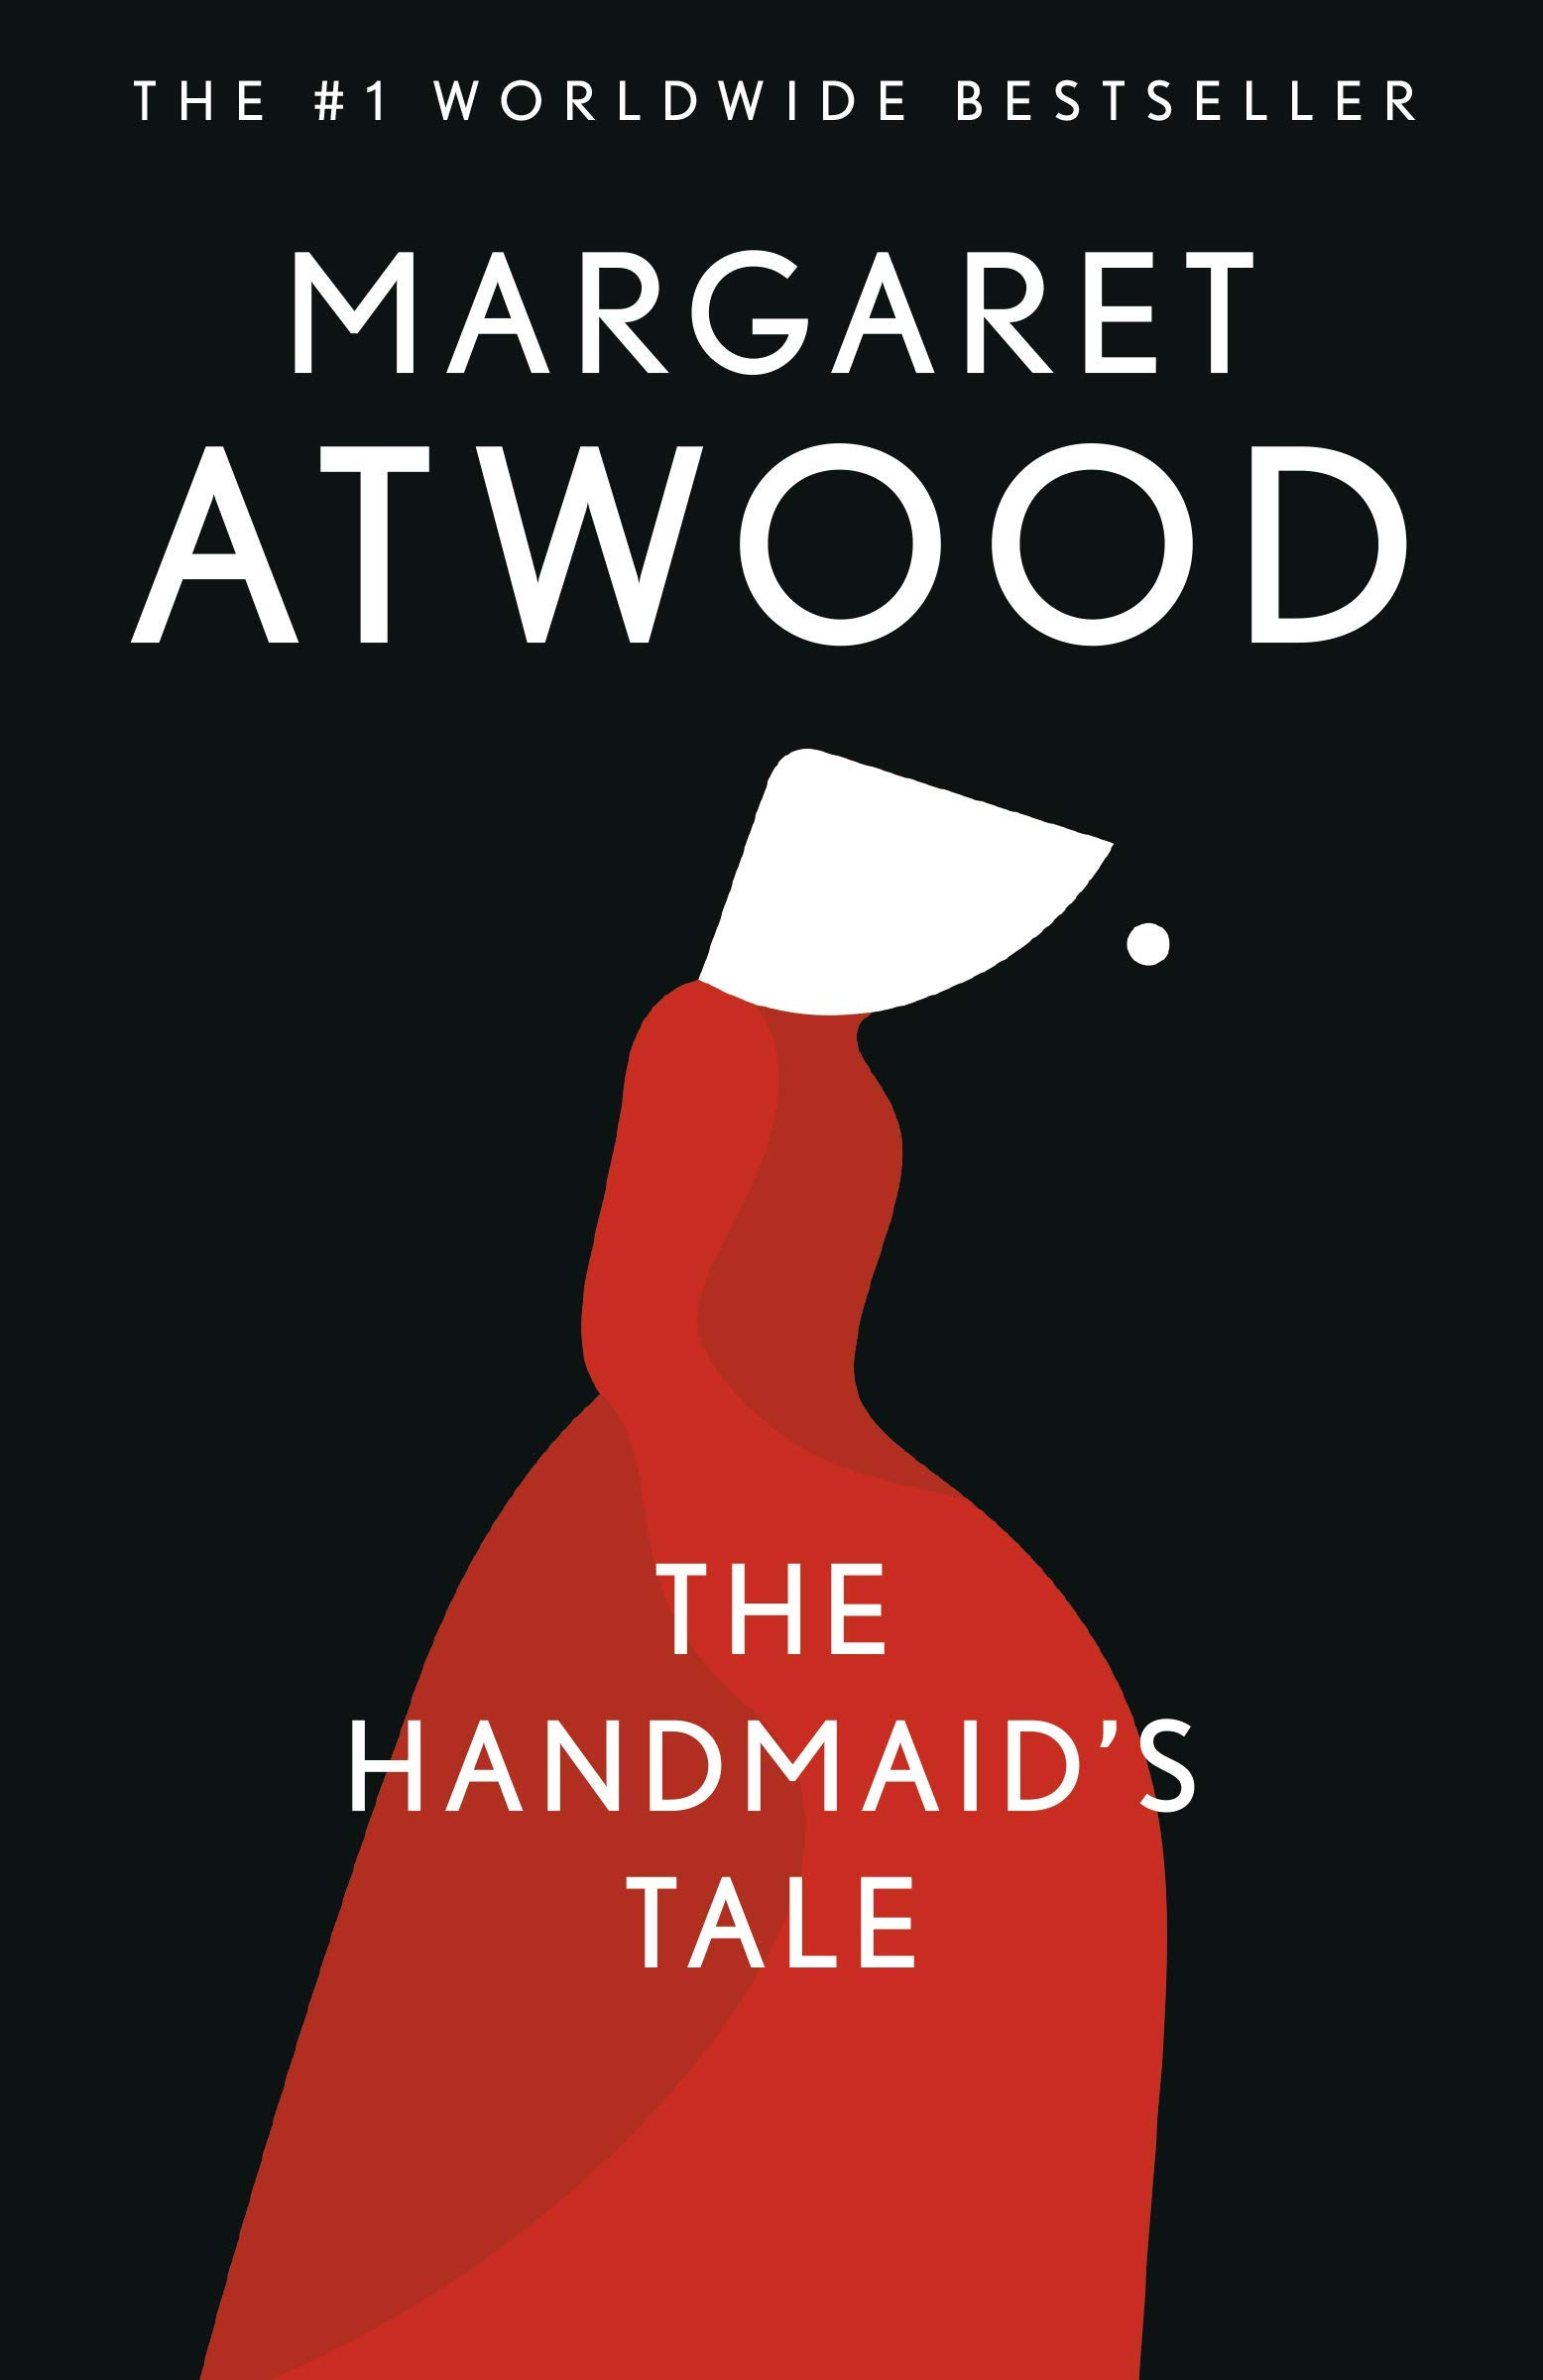 The Handmaid's Tale: Amazon.co.uk: Atwood, Margaret: 9780385490818 ...